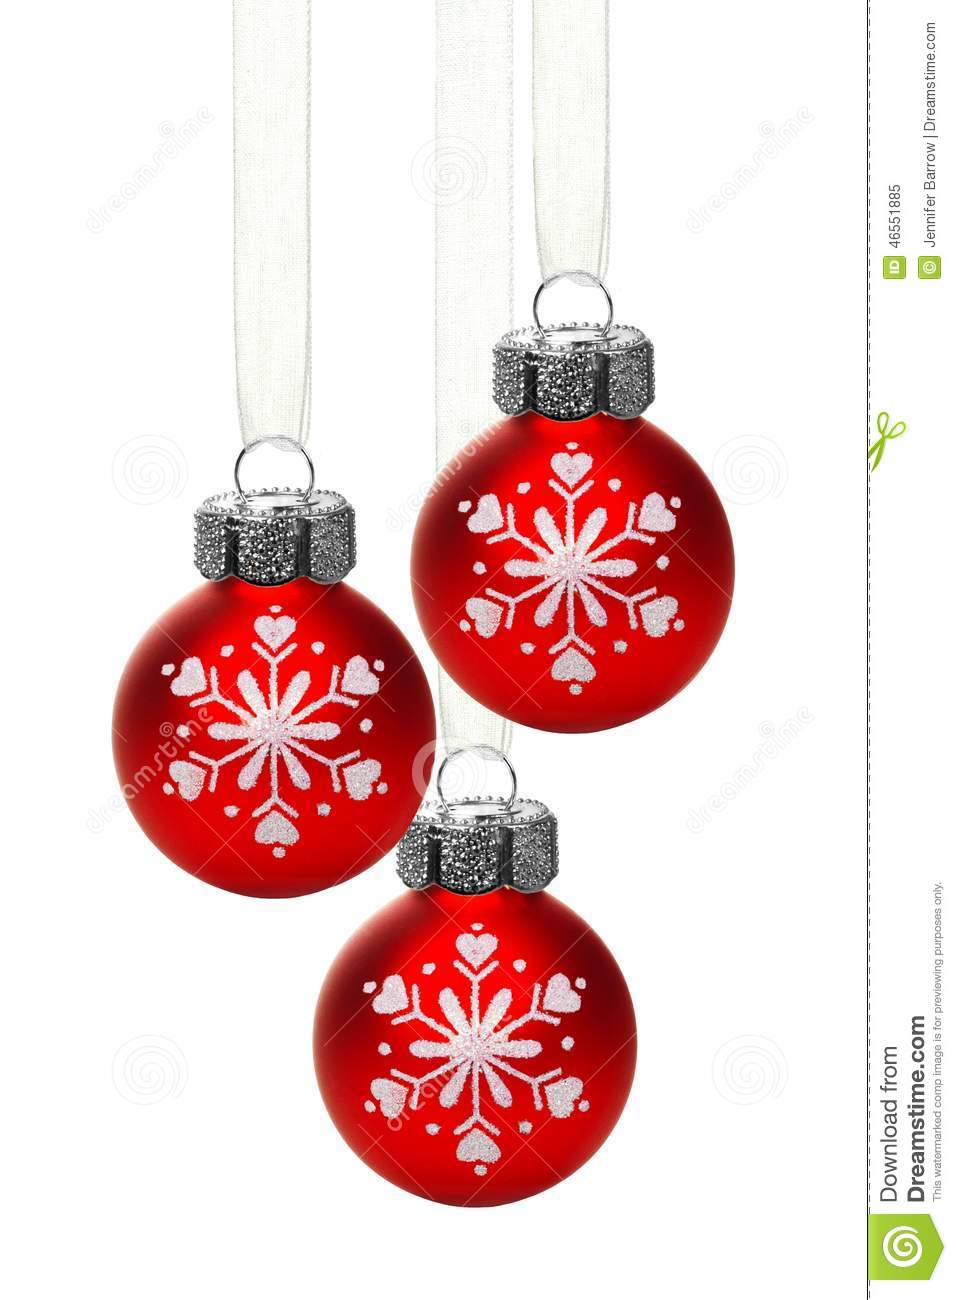 Christmas ornaments with snowflakes stock photo